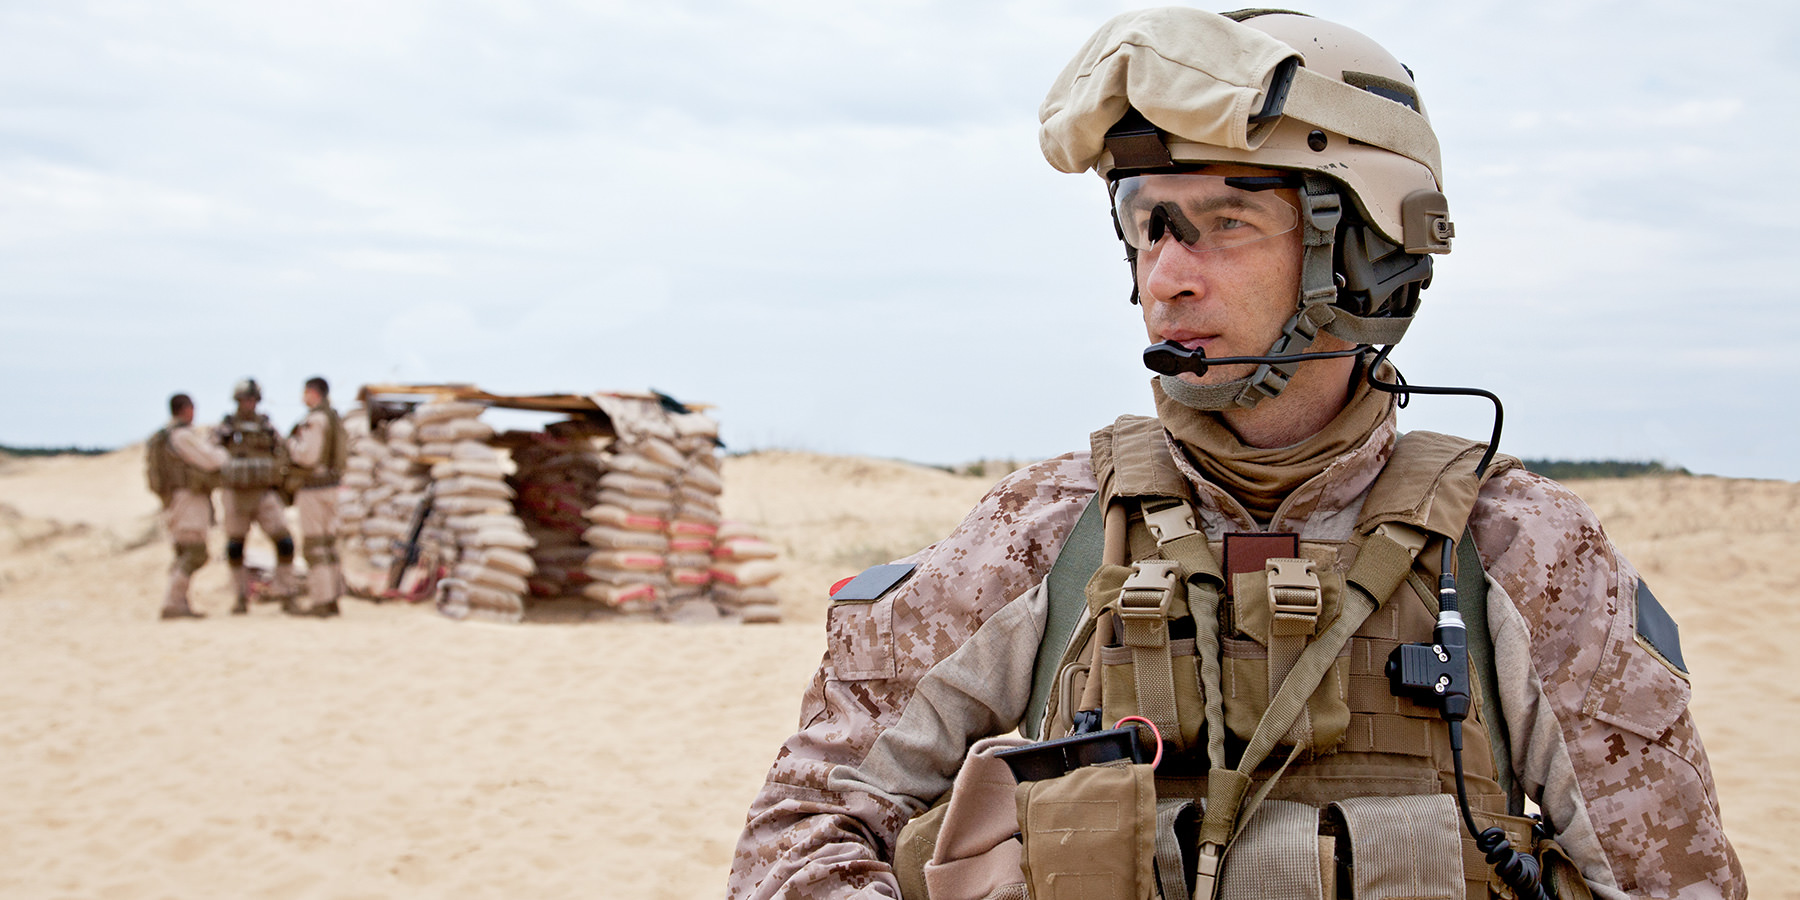 Physical exams are required before a deployment to a theater of operations.